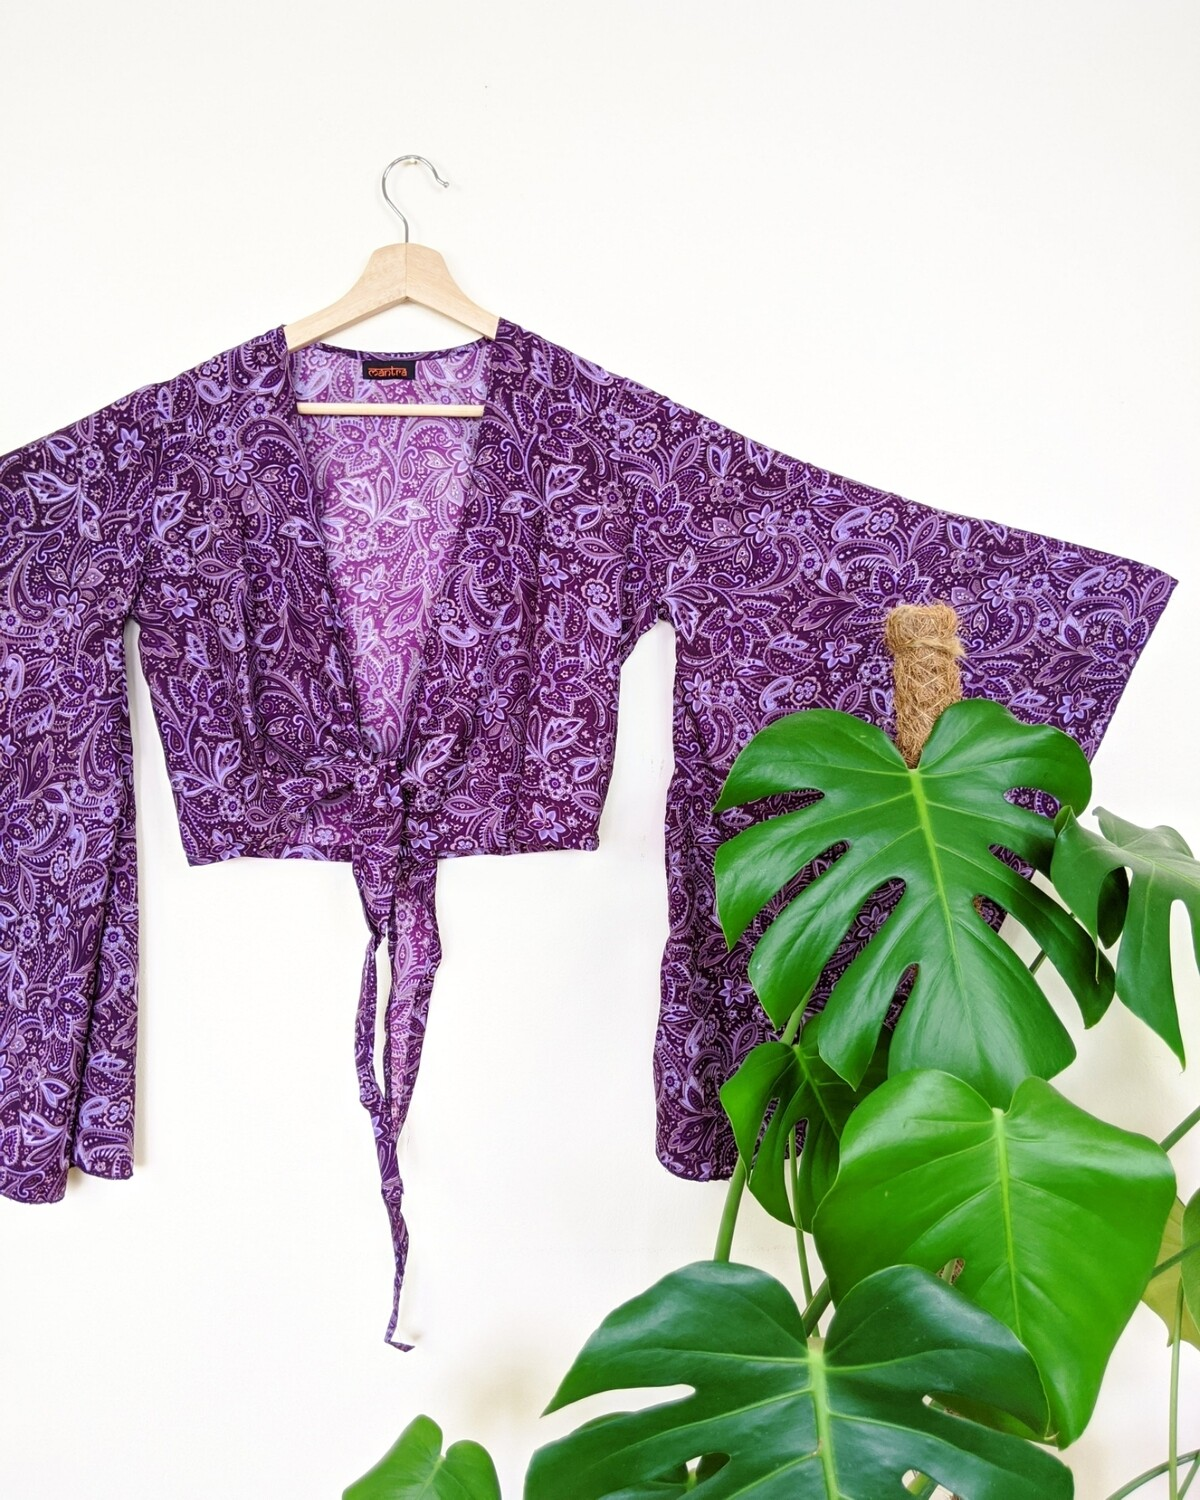 PURPLE PAISLEY BUTTERFLY SLEEVE WRAP TOP